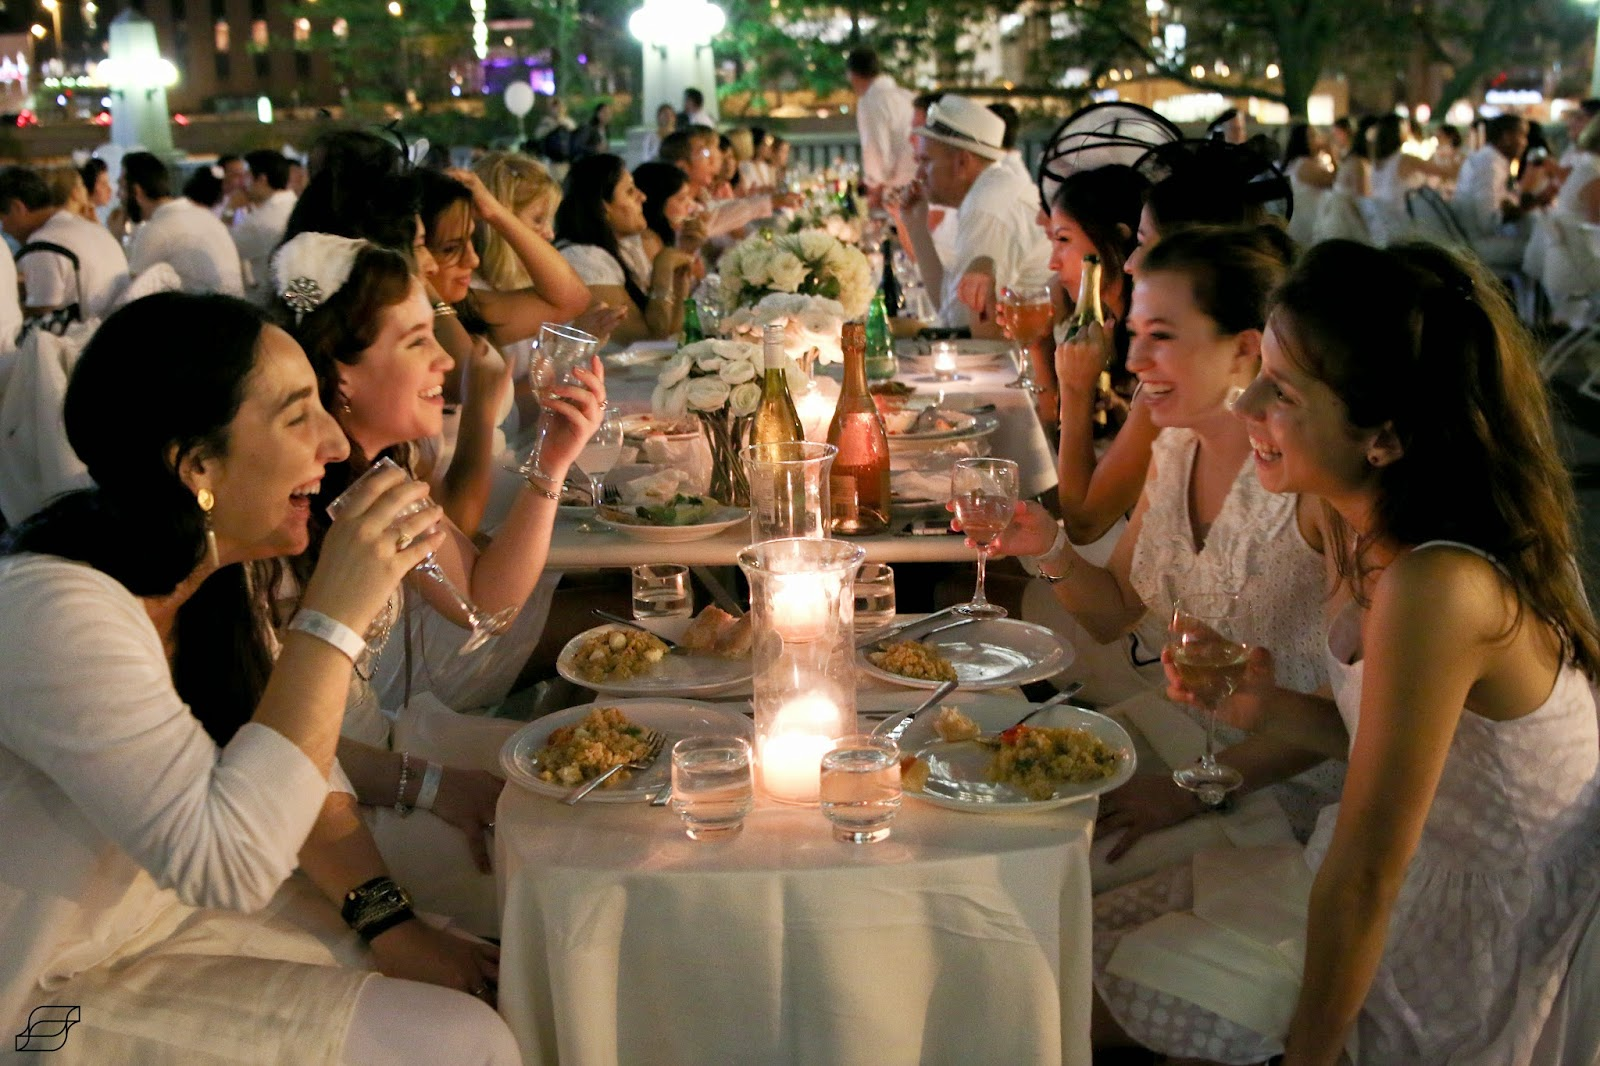 The world 39 s largest secret dinner party le diner en blanc for Secret dinner party